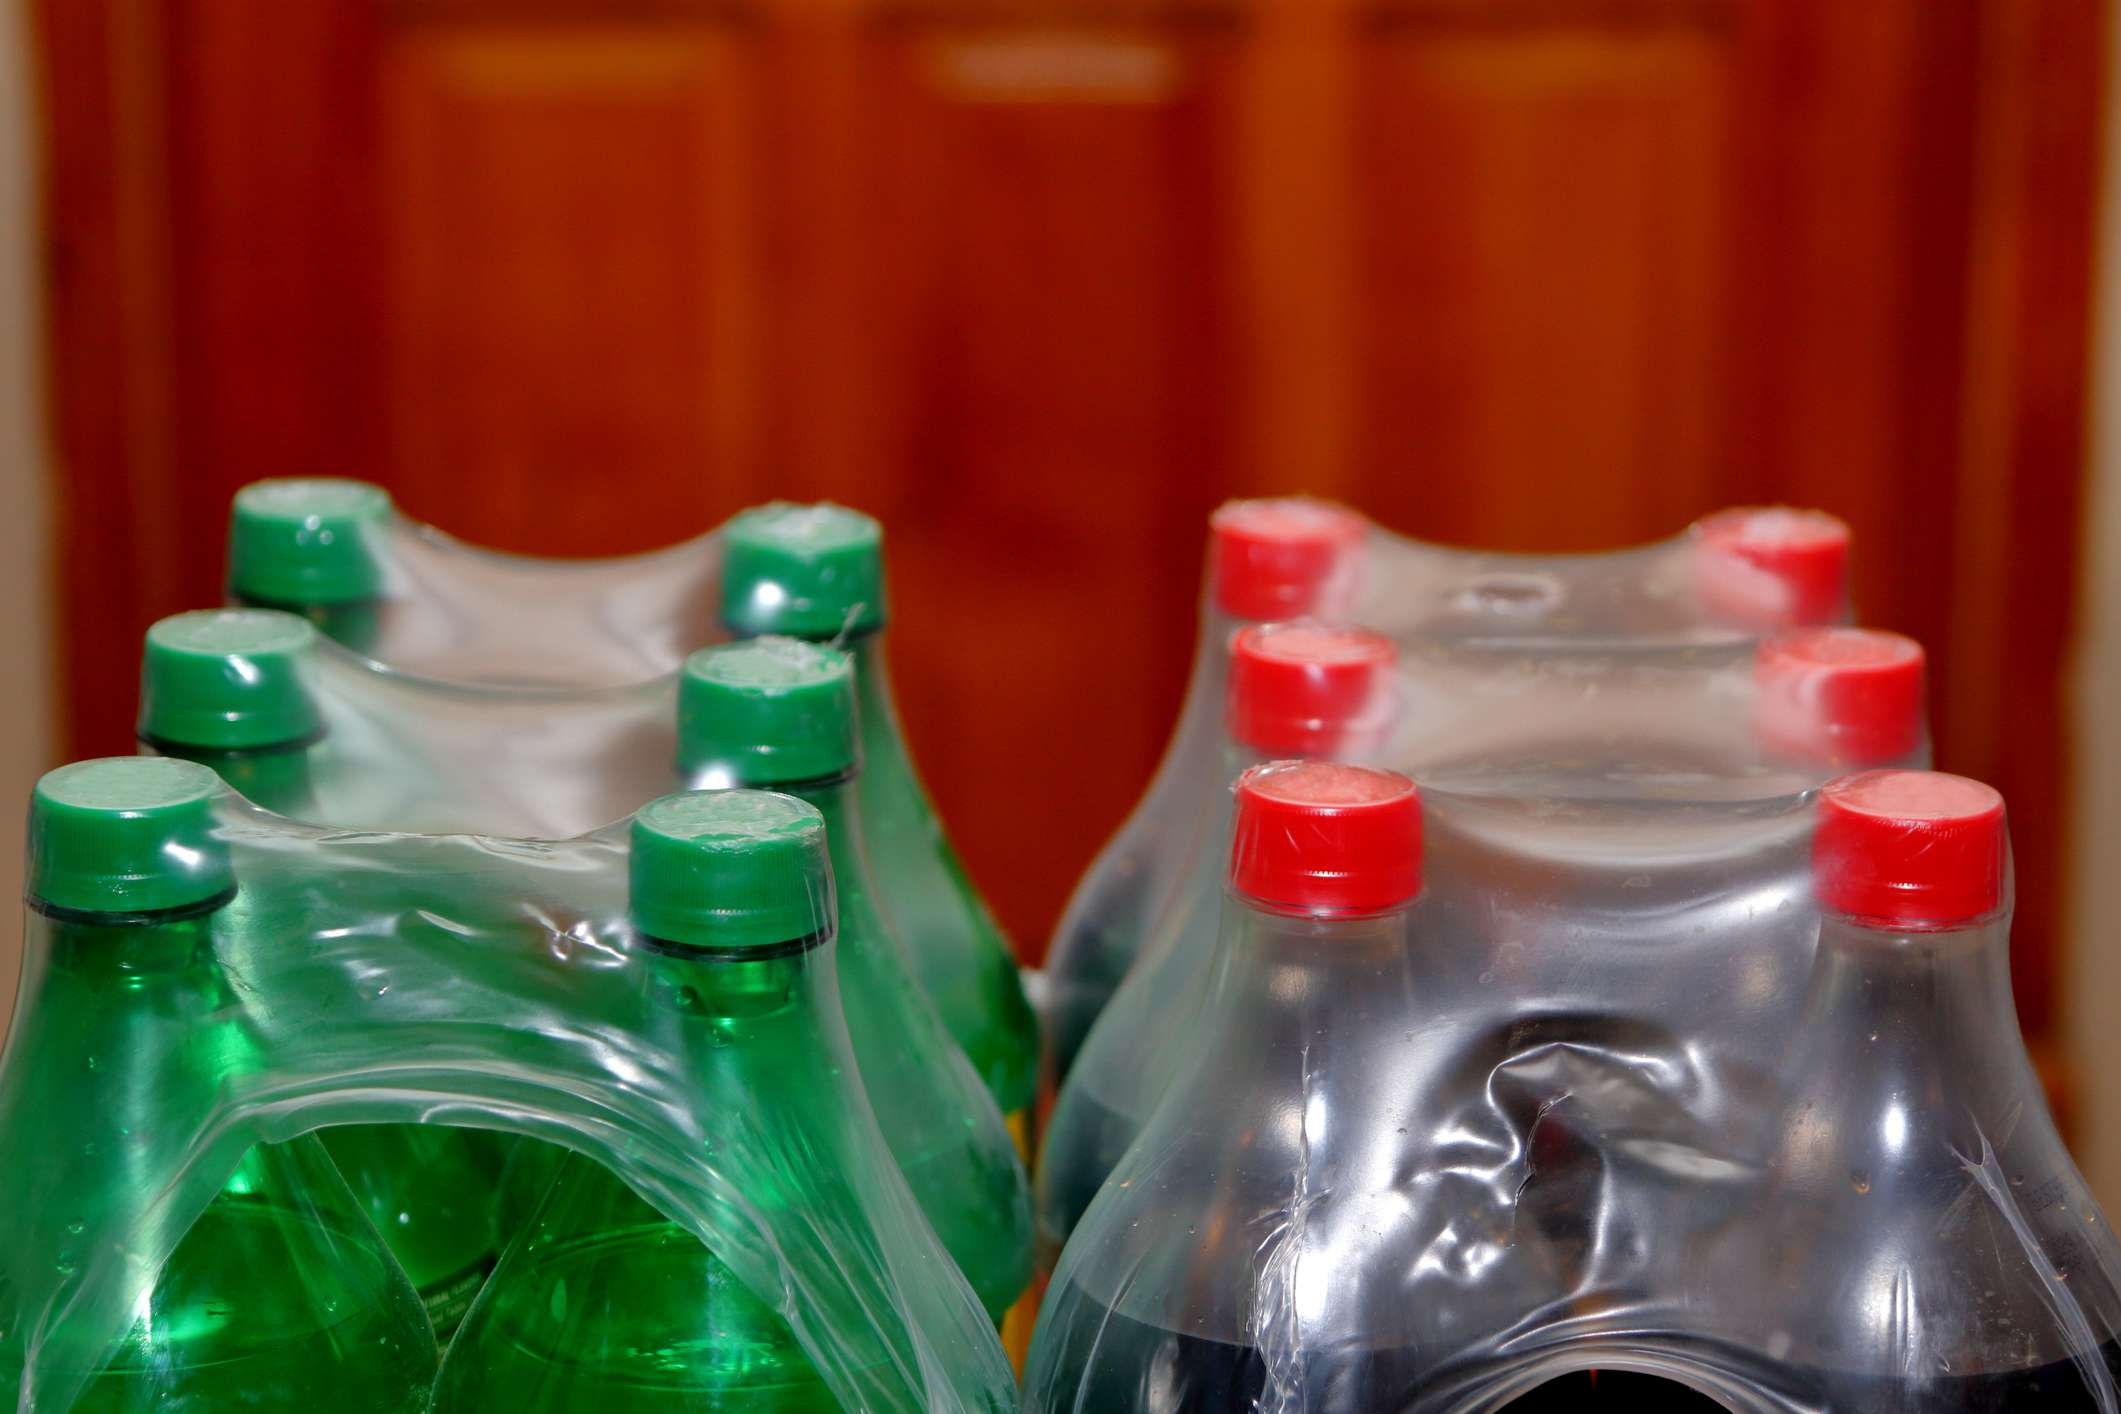 Soda in plastic bottles and packaging.